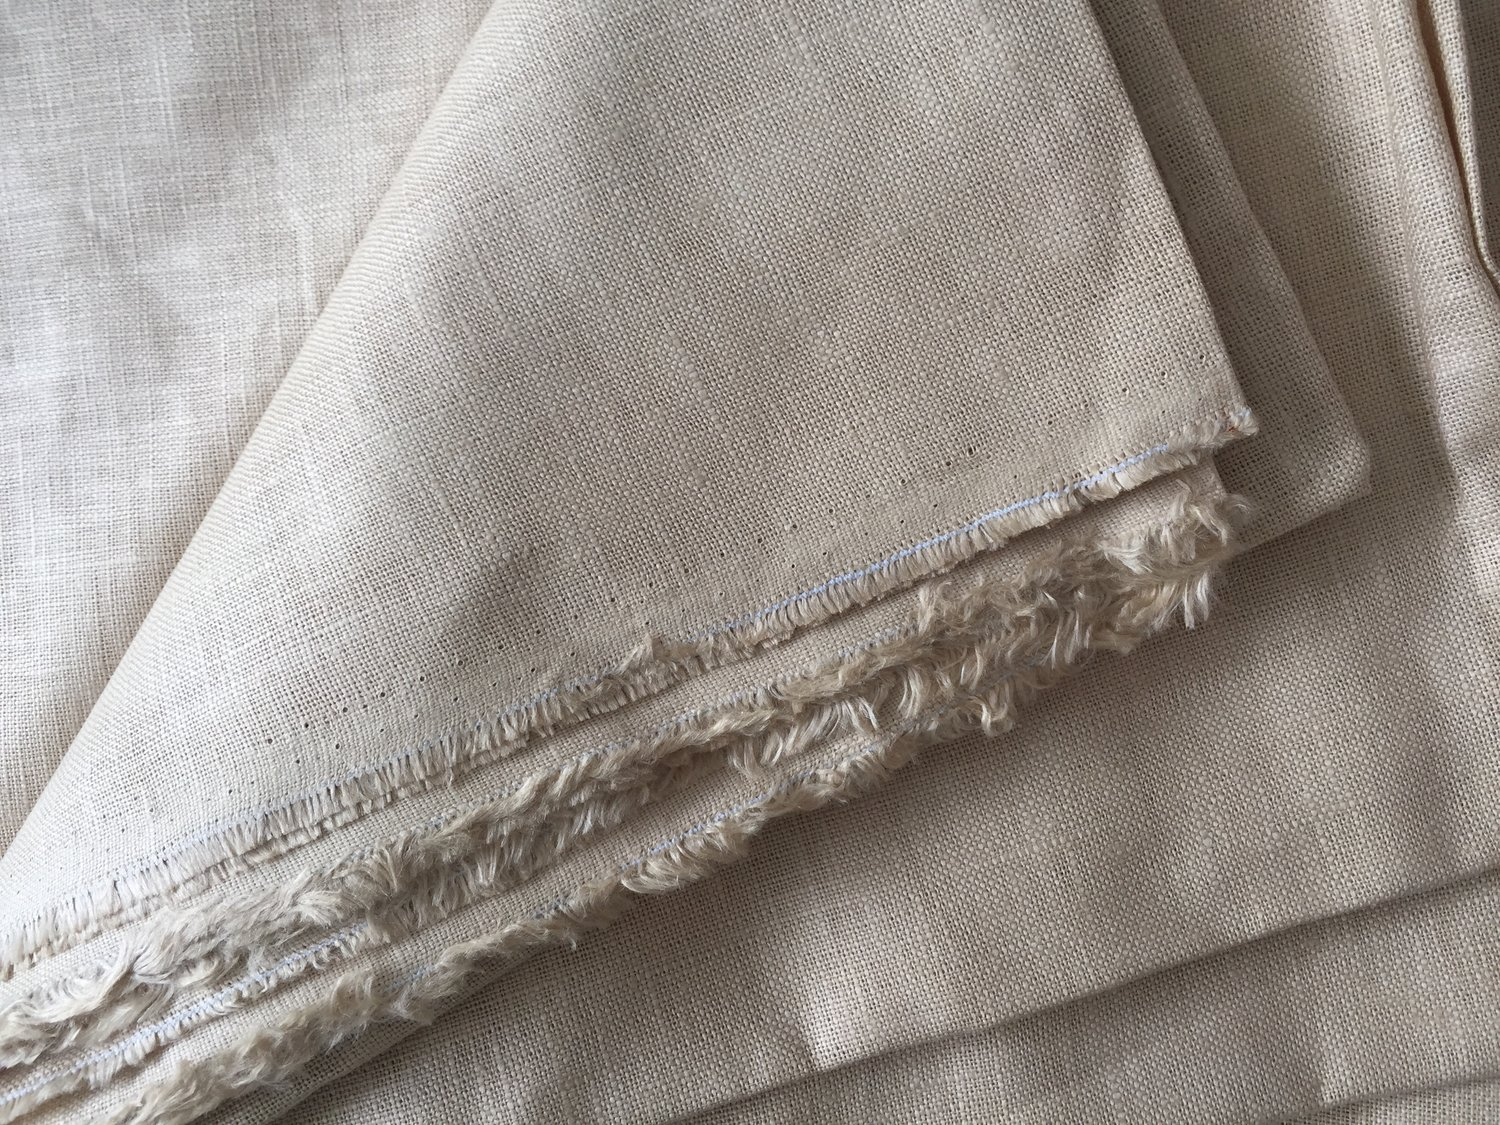 5f23cc7b5a5 tamsinblackbourn - Linen As An Ethical Fabric